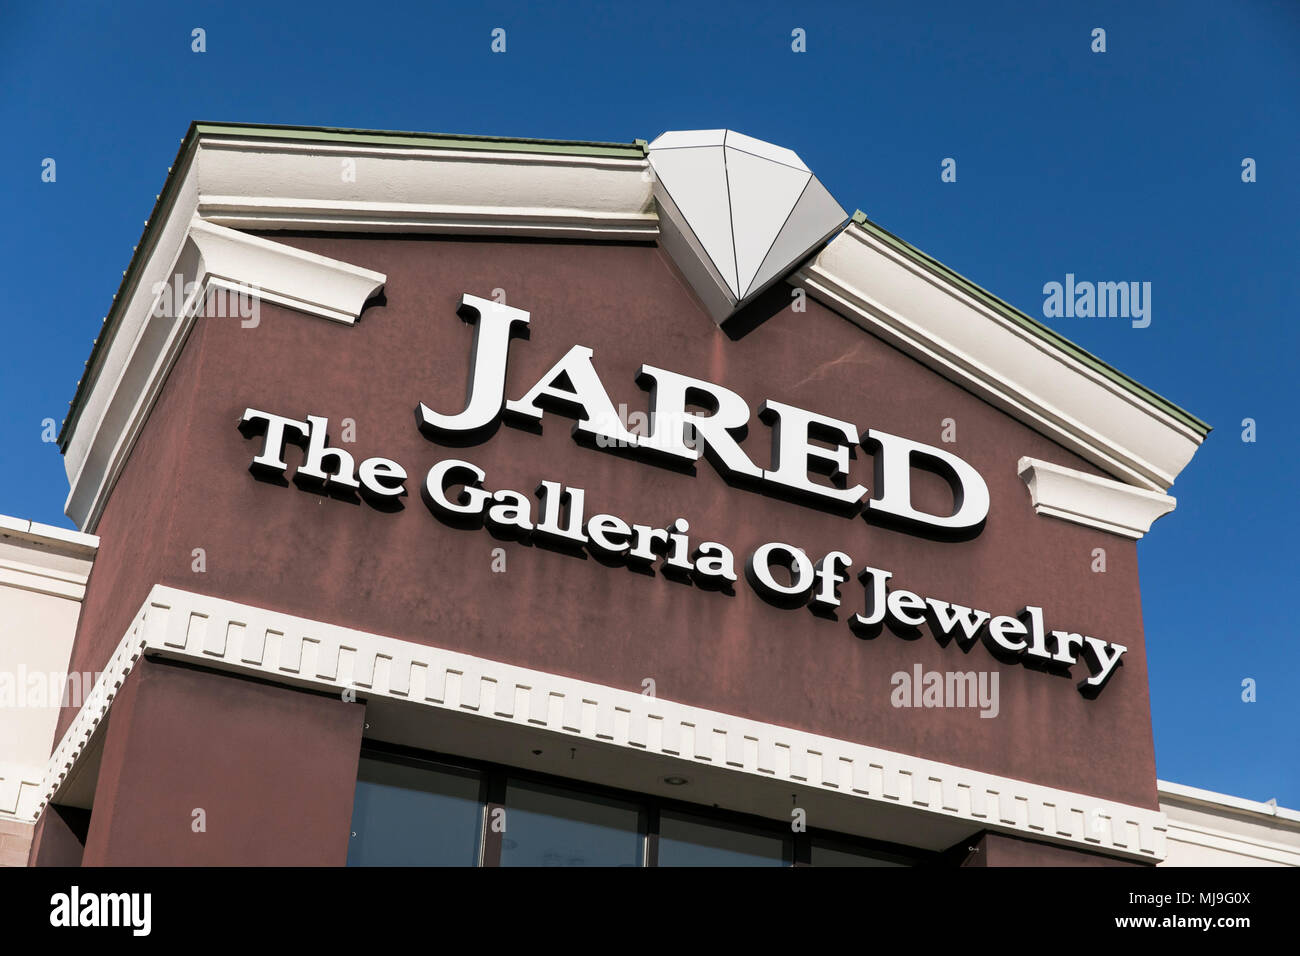 Jared Stock Photos Jared Stock Images Alamy